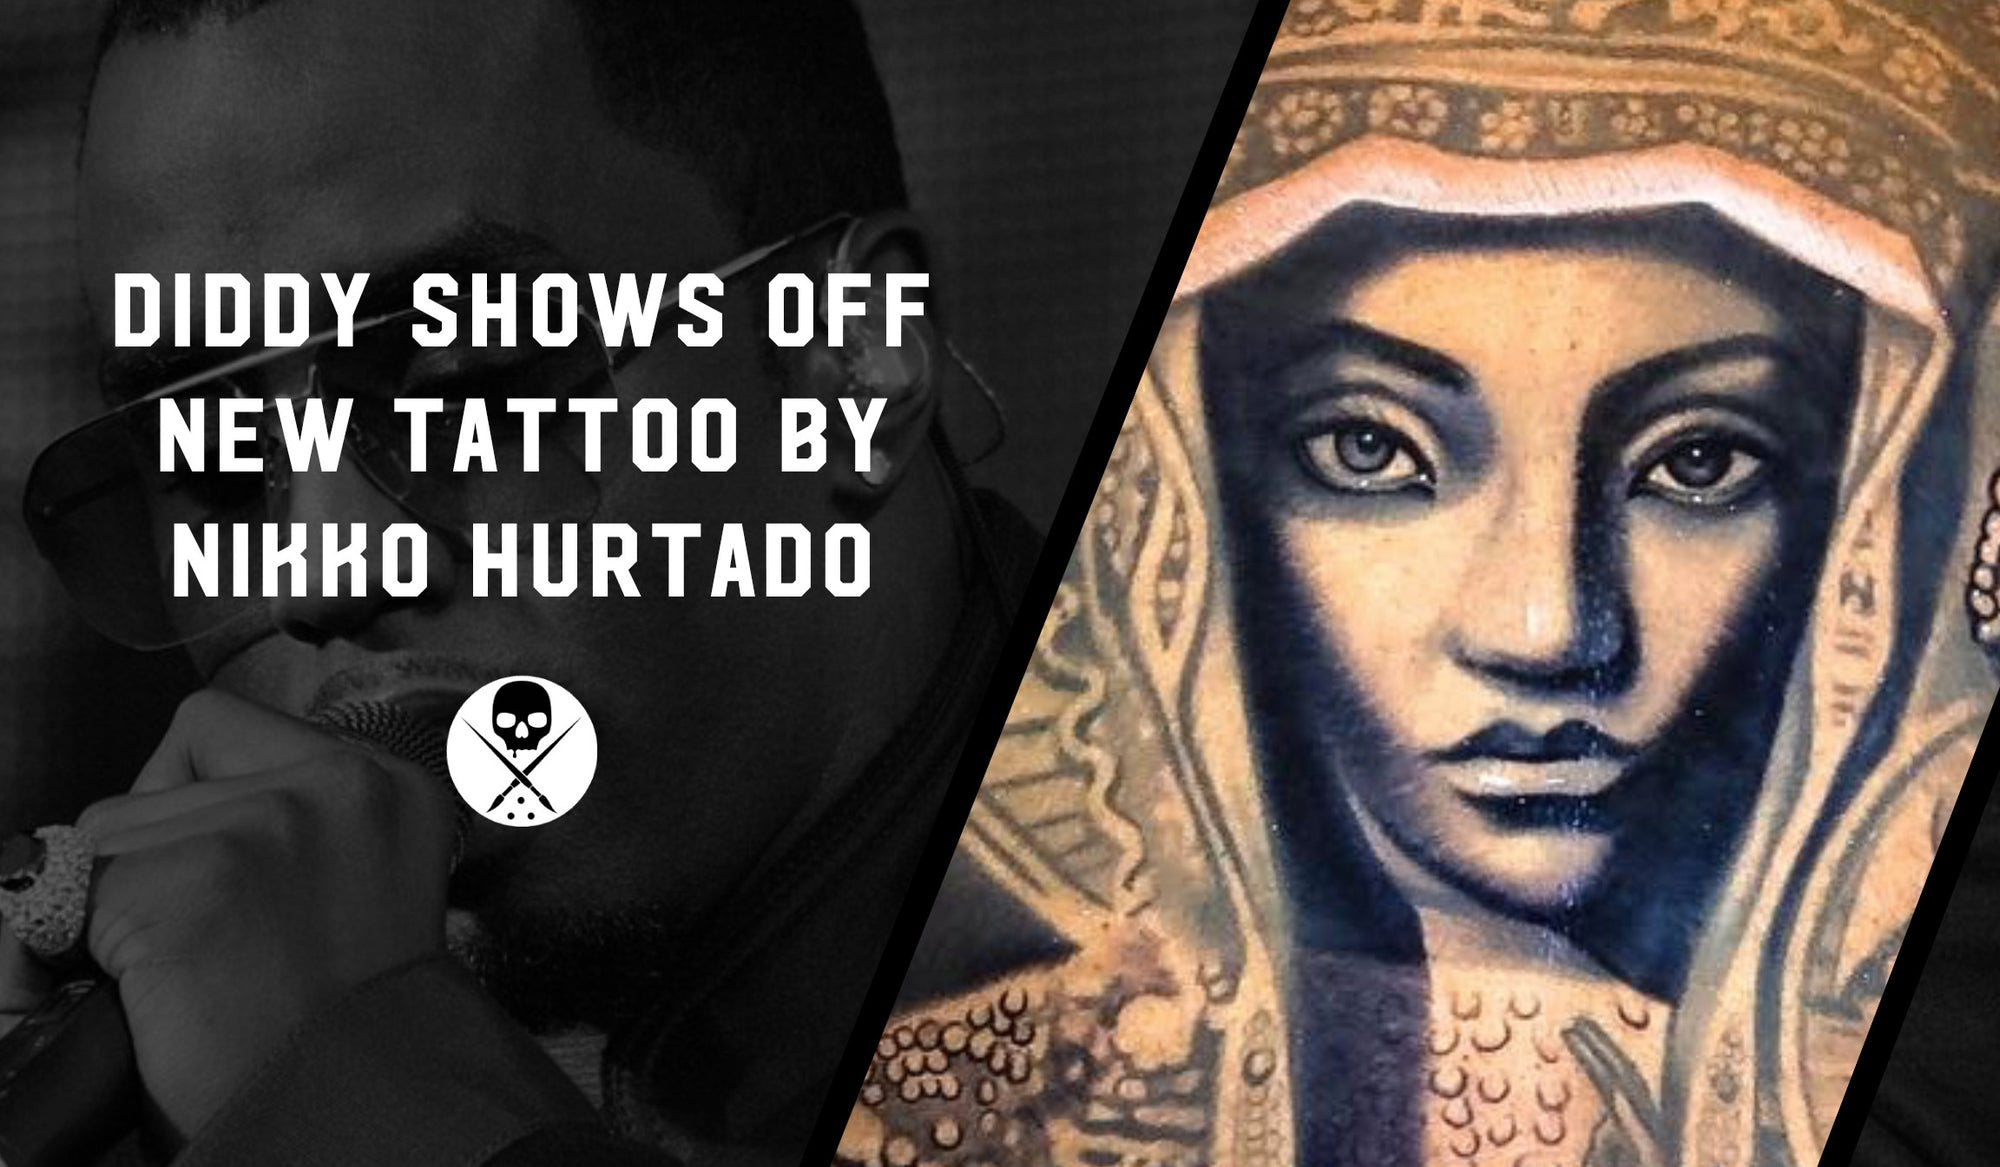 Diddy Shows Off New Tattoo By Nikko Hurtado